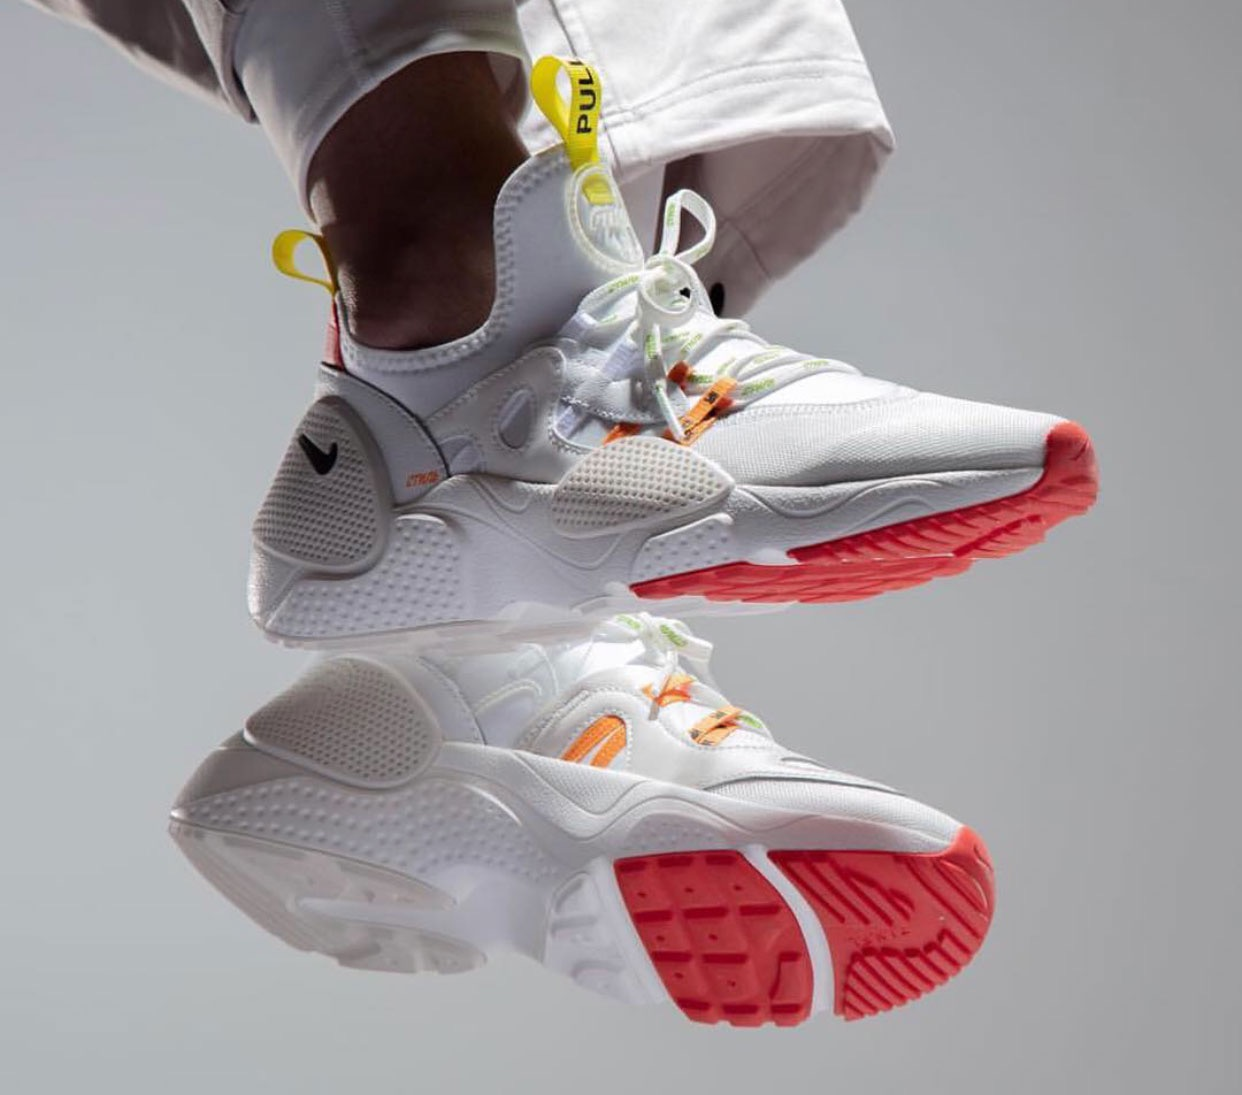 huge discount fa687 cec71 Heron Preston Nike Huarache EDGE Sneakers - TheShoeGame.com